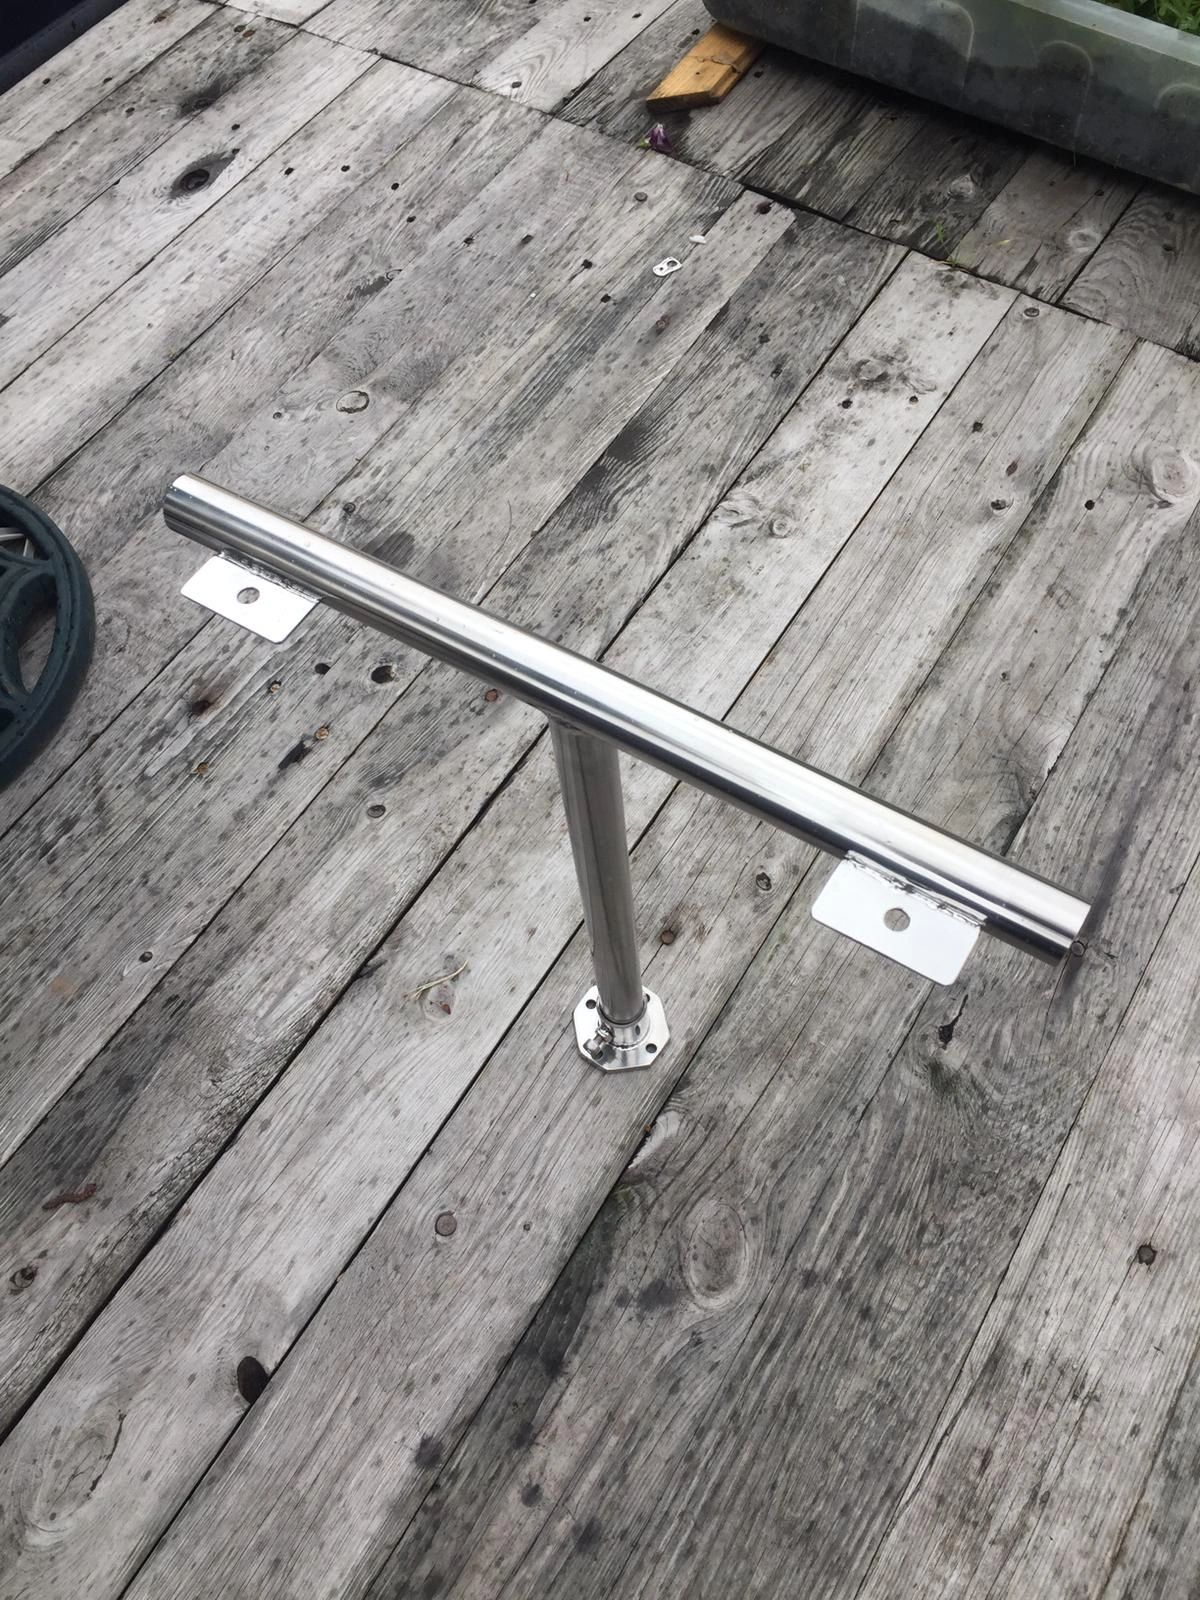 This twin headlight stand in stainless steel for a Narrowboats.